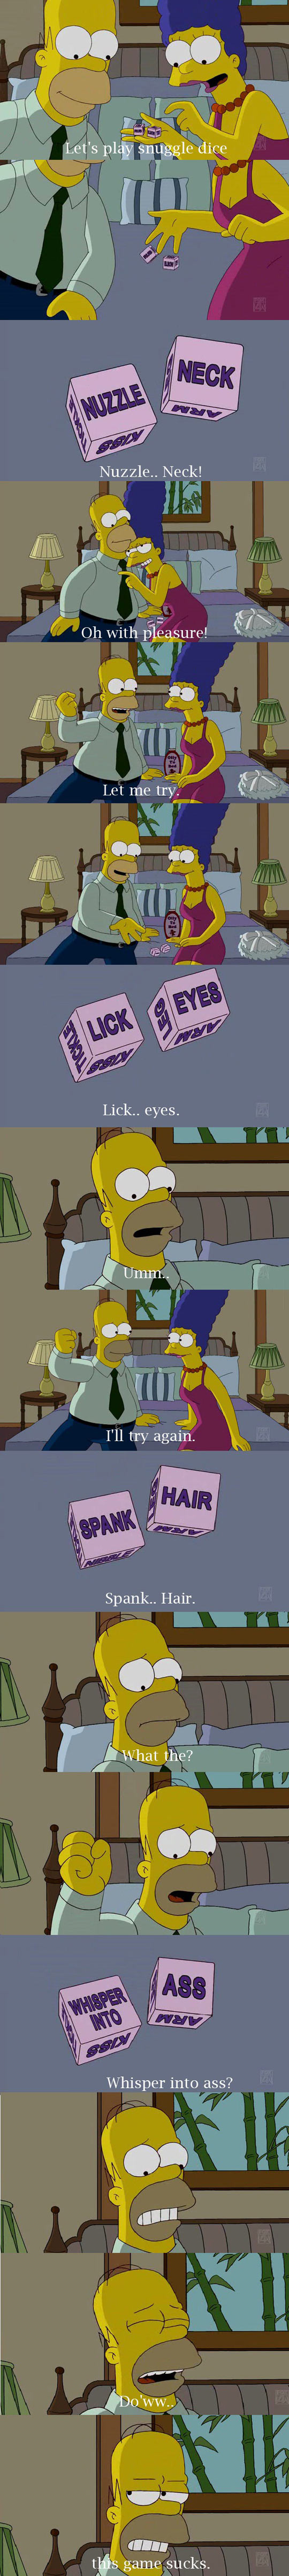 funny-picture-Simpson-Homer-Marge-dice